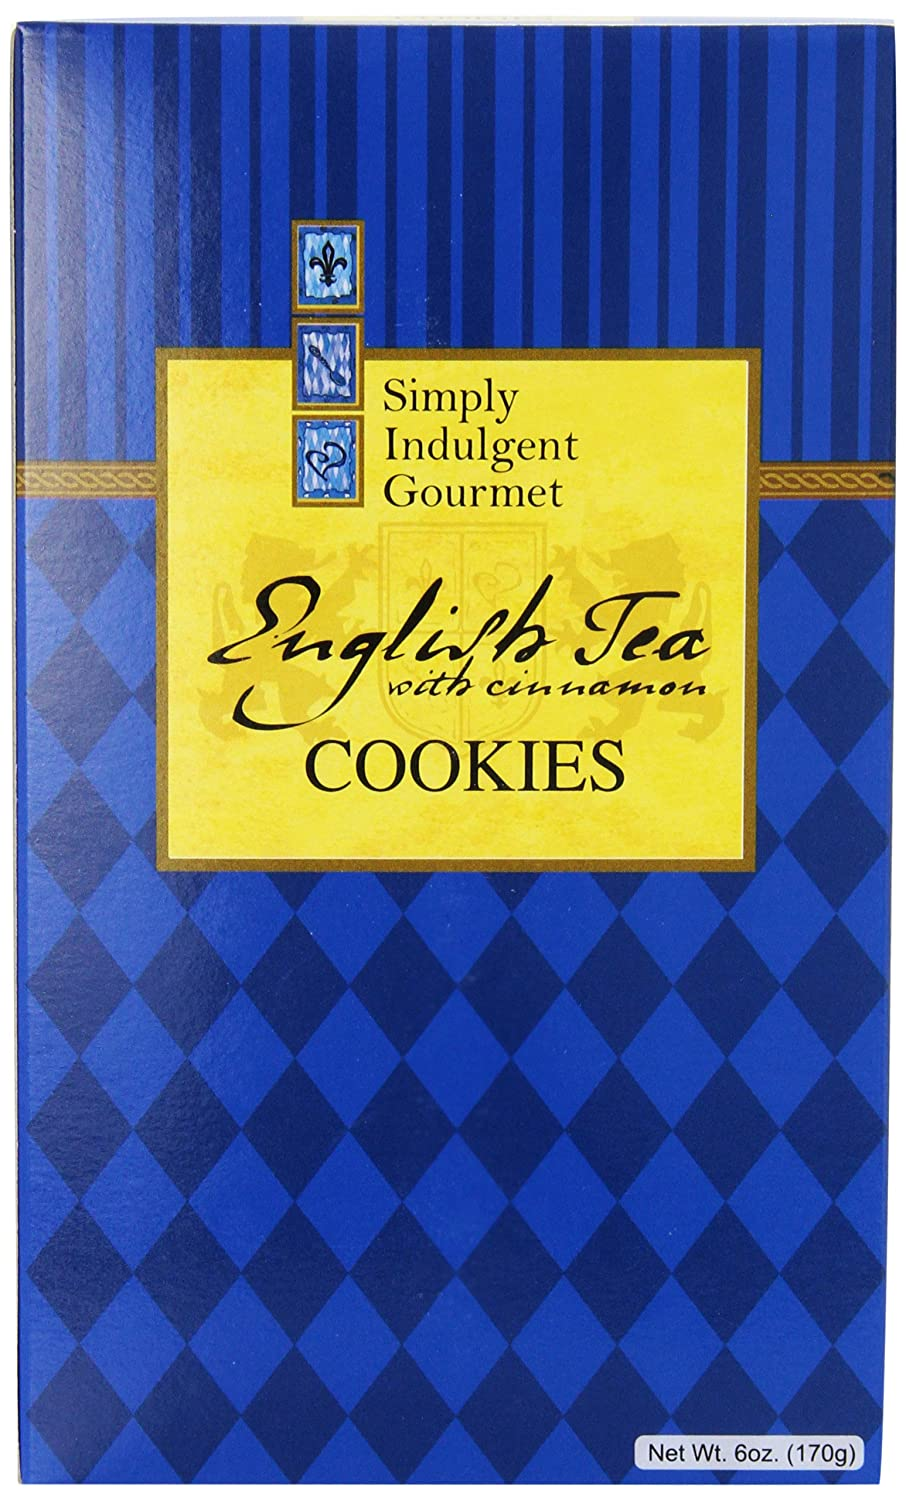 Amazon.com: Simply Indulgent Gourmet English Tea with Cinnamon Cookies, 6-Ounce Blue Gift Boxes (Pack of 12)